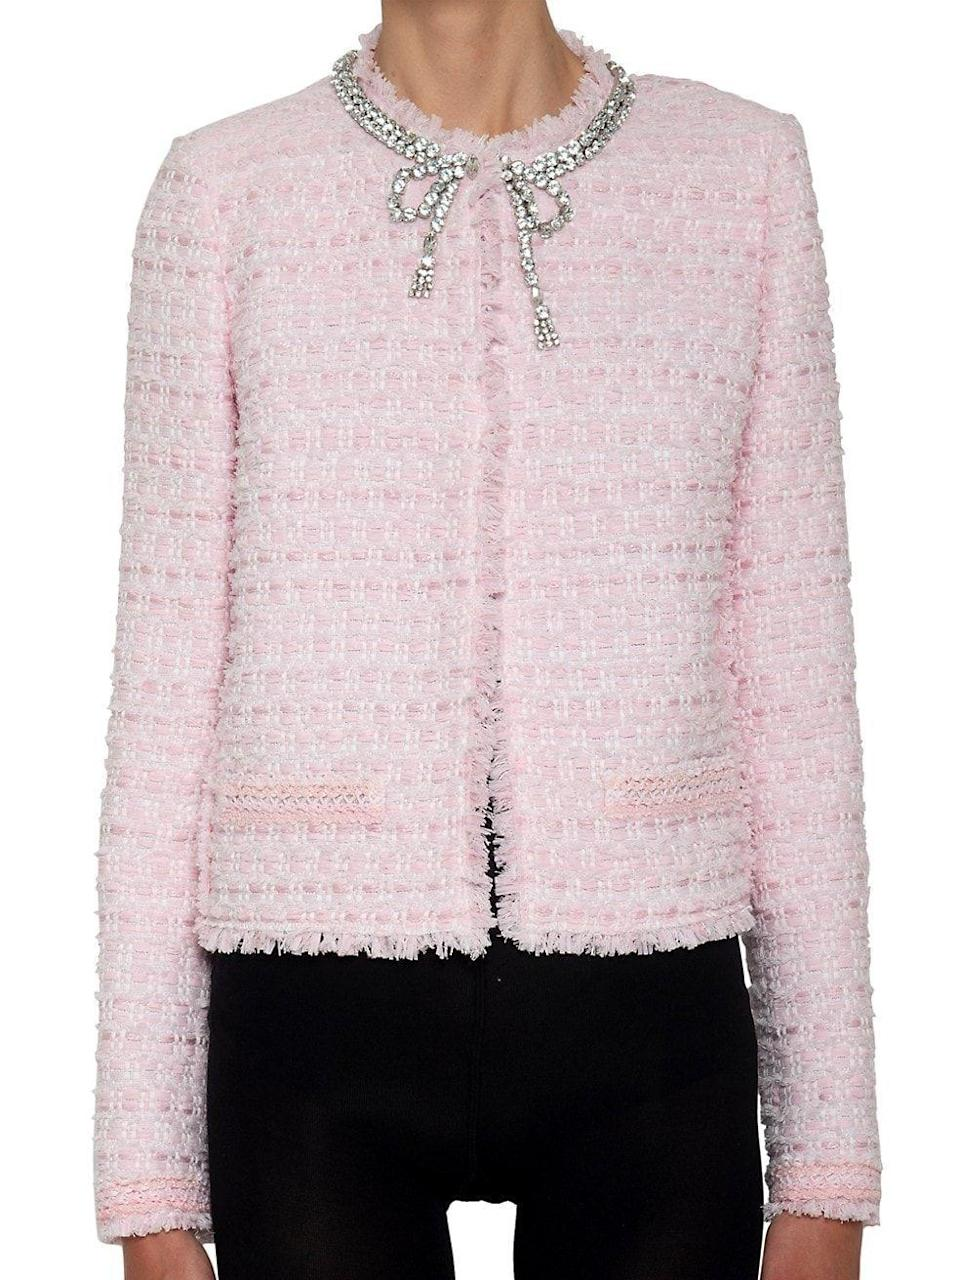 """<p><strong>Giambattista Valli</strong></p><p>saksfifthavenue.com</p><p><strong>$2930.00</strong></p><p><a href=""""https://go.redirectingat.com?id=74968X1596630&url=https%3A%2F%2Fwww.saksfifthavenue.com%2Fproduct%2Fgiambattista-valli-embellished-tweed-jacket-0400013634234.html%3Fdwvar_0400013634234_color%3DLIGHT%2BROSE&sref=https%3A%2F%2Fwww.townandcountrymag.com%2Fstyle%2Ffashion-trends%2Fg36332074%2Fbest-bridal-wedding-jackets%2F"""" rel=""""nofollow noopener"""" target=""""_blank"""" data-ylk=""""slk:Shop Now"""" class=""""link rapid-noclick-resp"""">Shop Now</a></p><p>Spoil your bridesmaids silly if you're having a smaller affair—pair an embellished tweed jacket with a simple silhouette for maximum impact. </p>"""